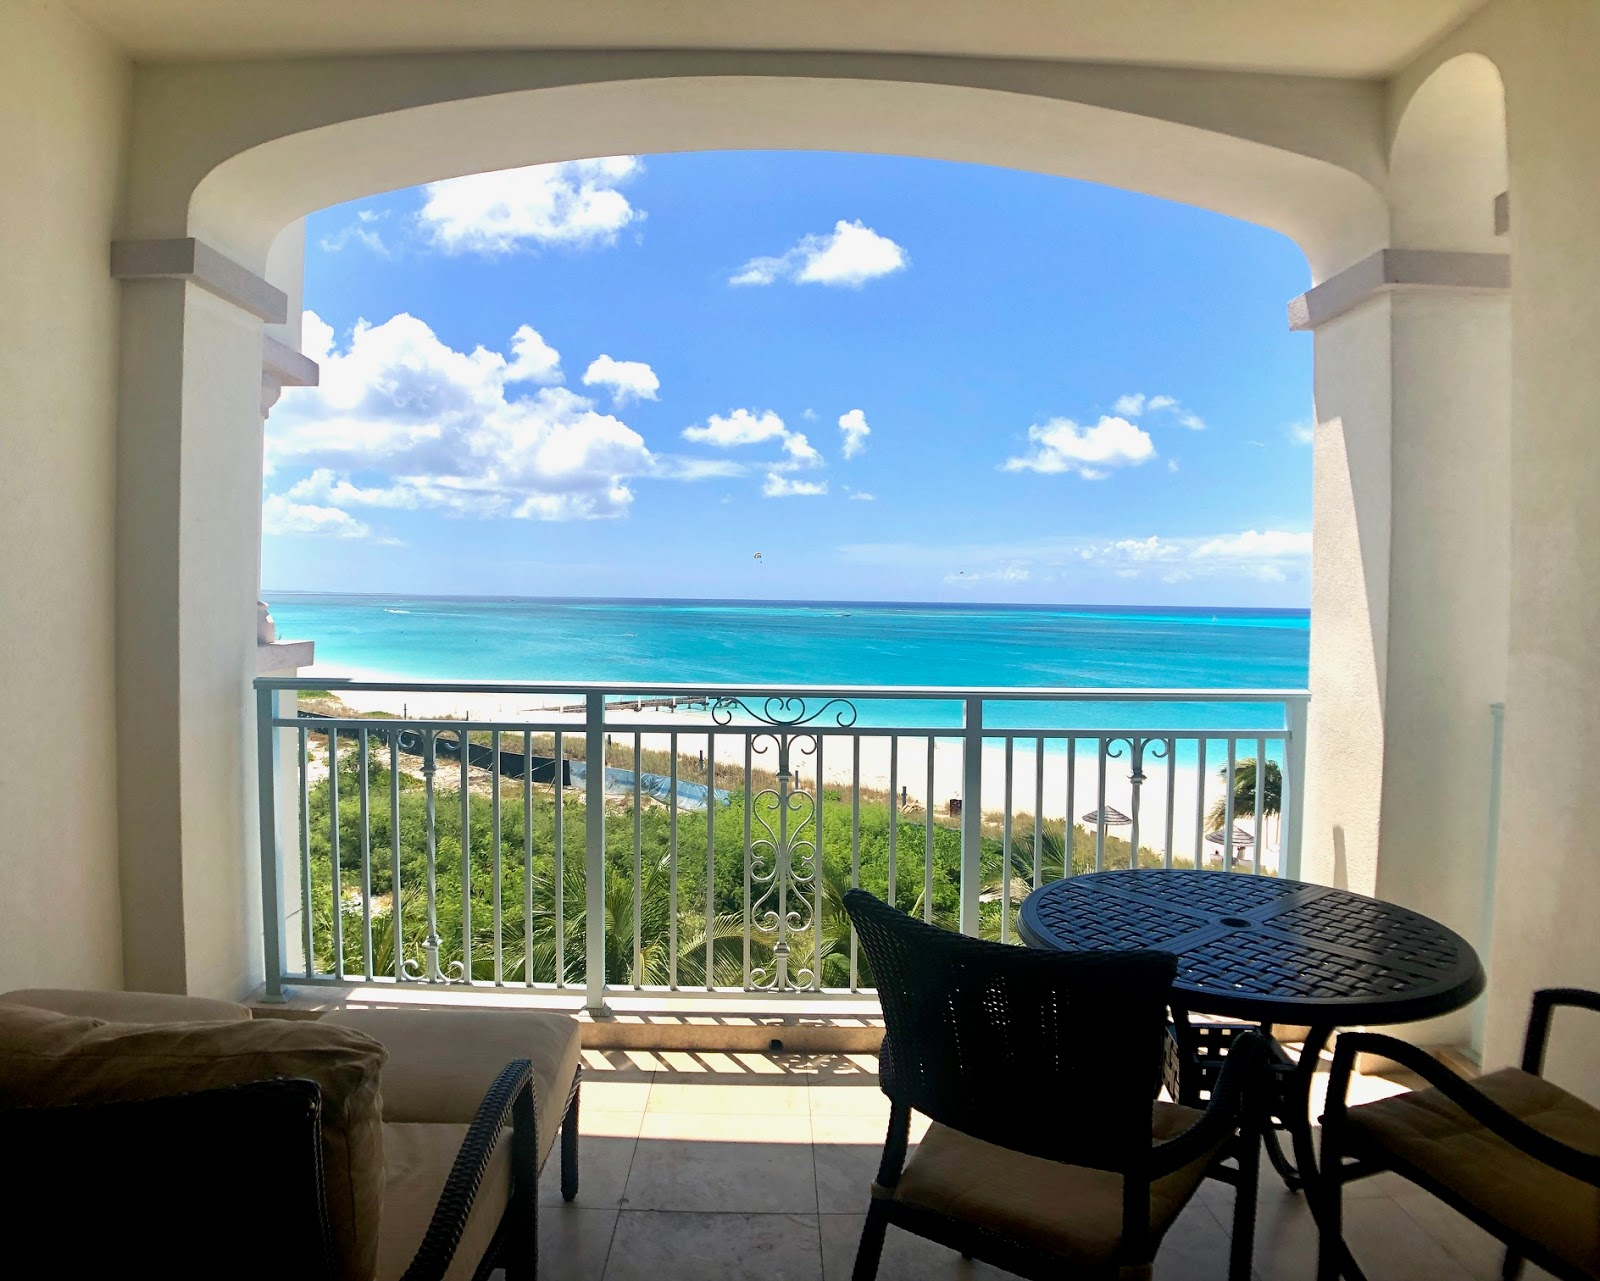 Seven Stars Resort Turks and Caicos Rooms